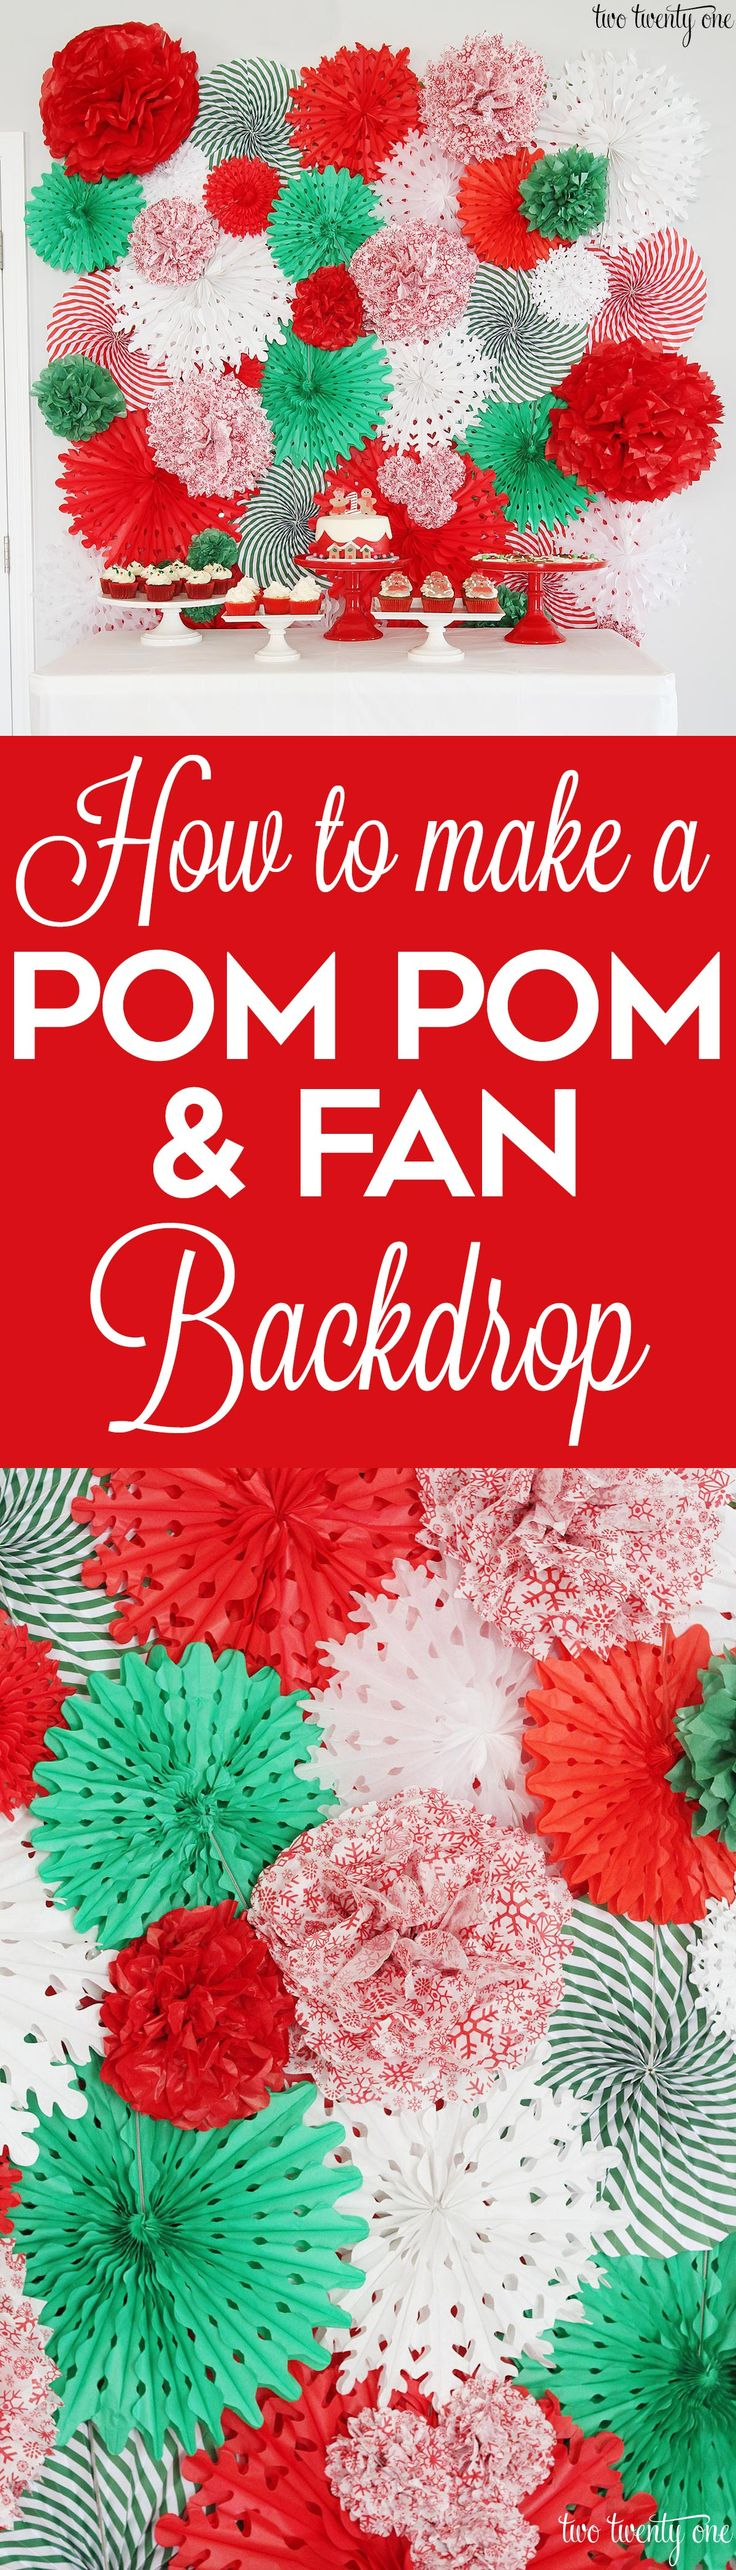 How to make a tissue paper pom pom and fan backdrop! Great step by step tutorial!